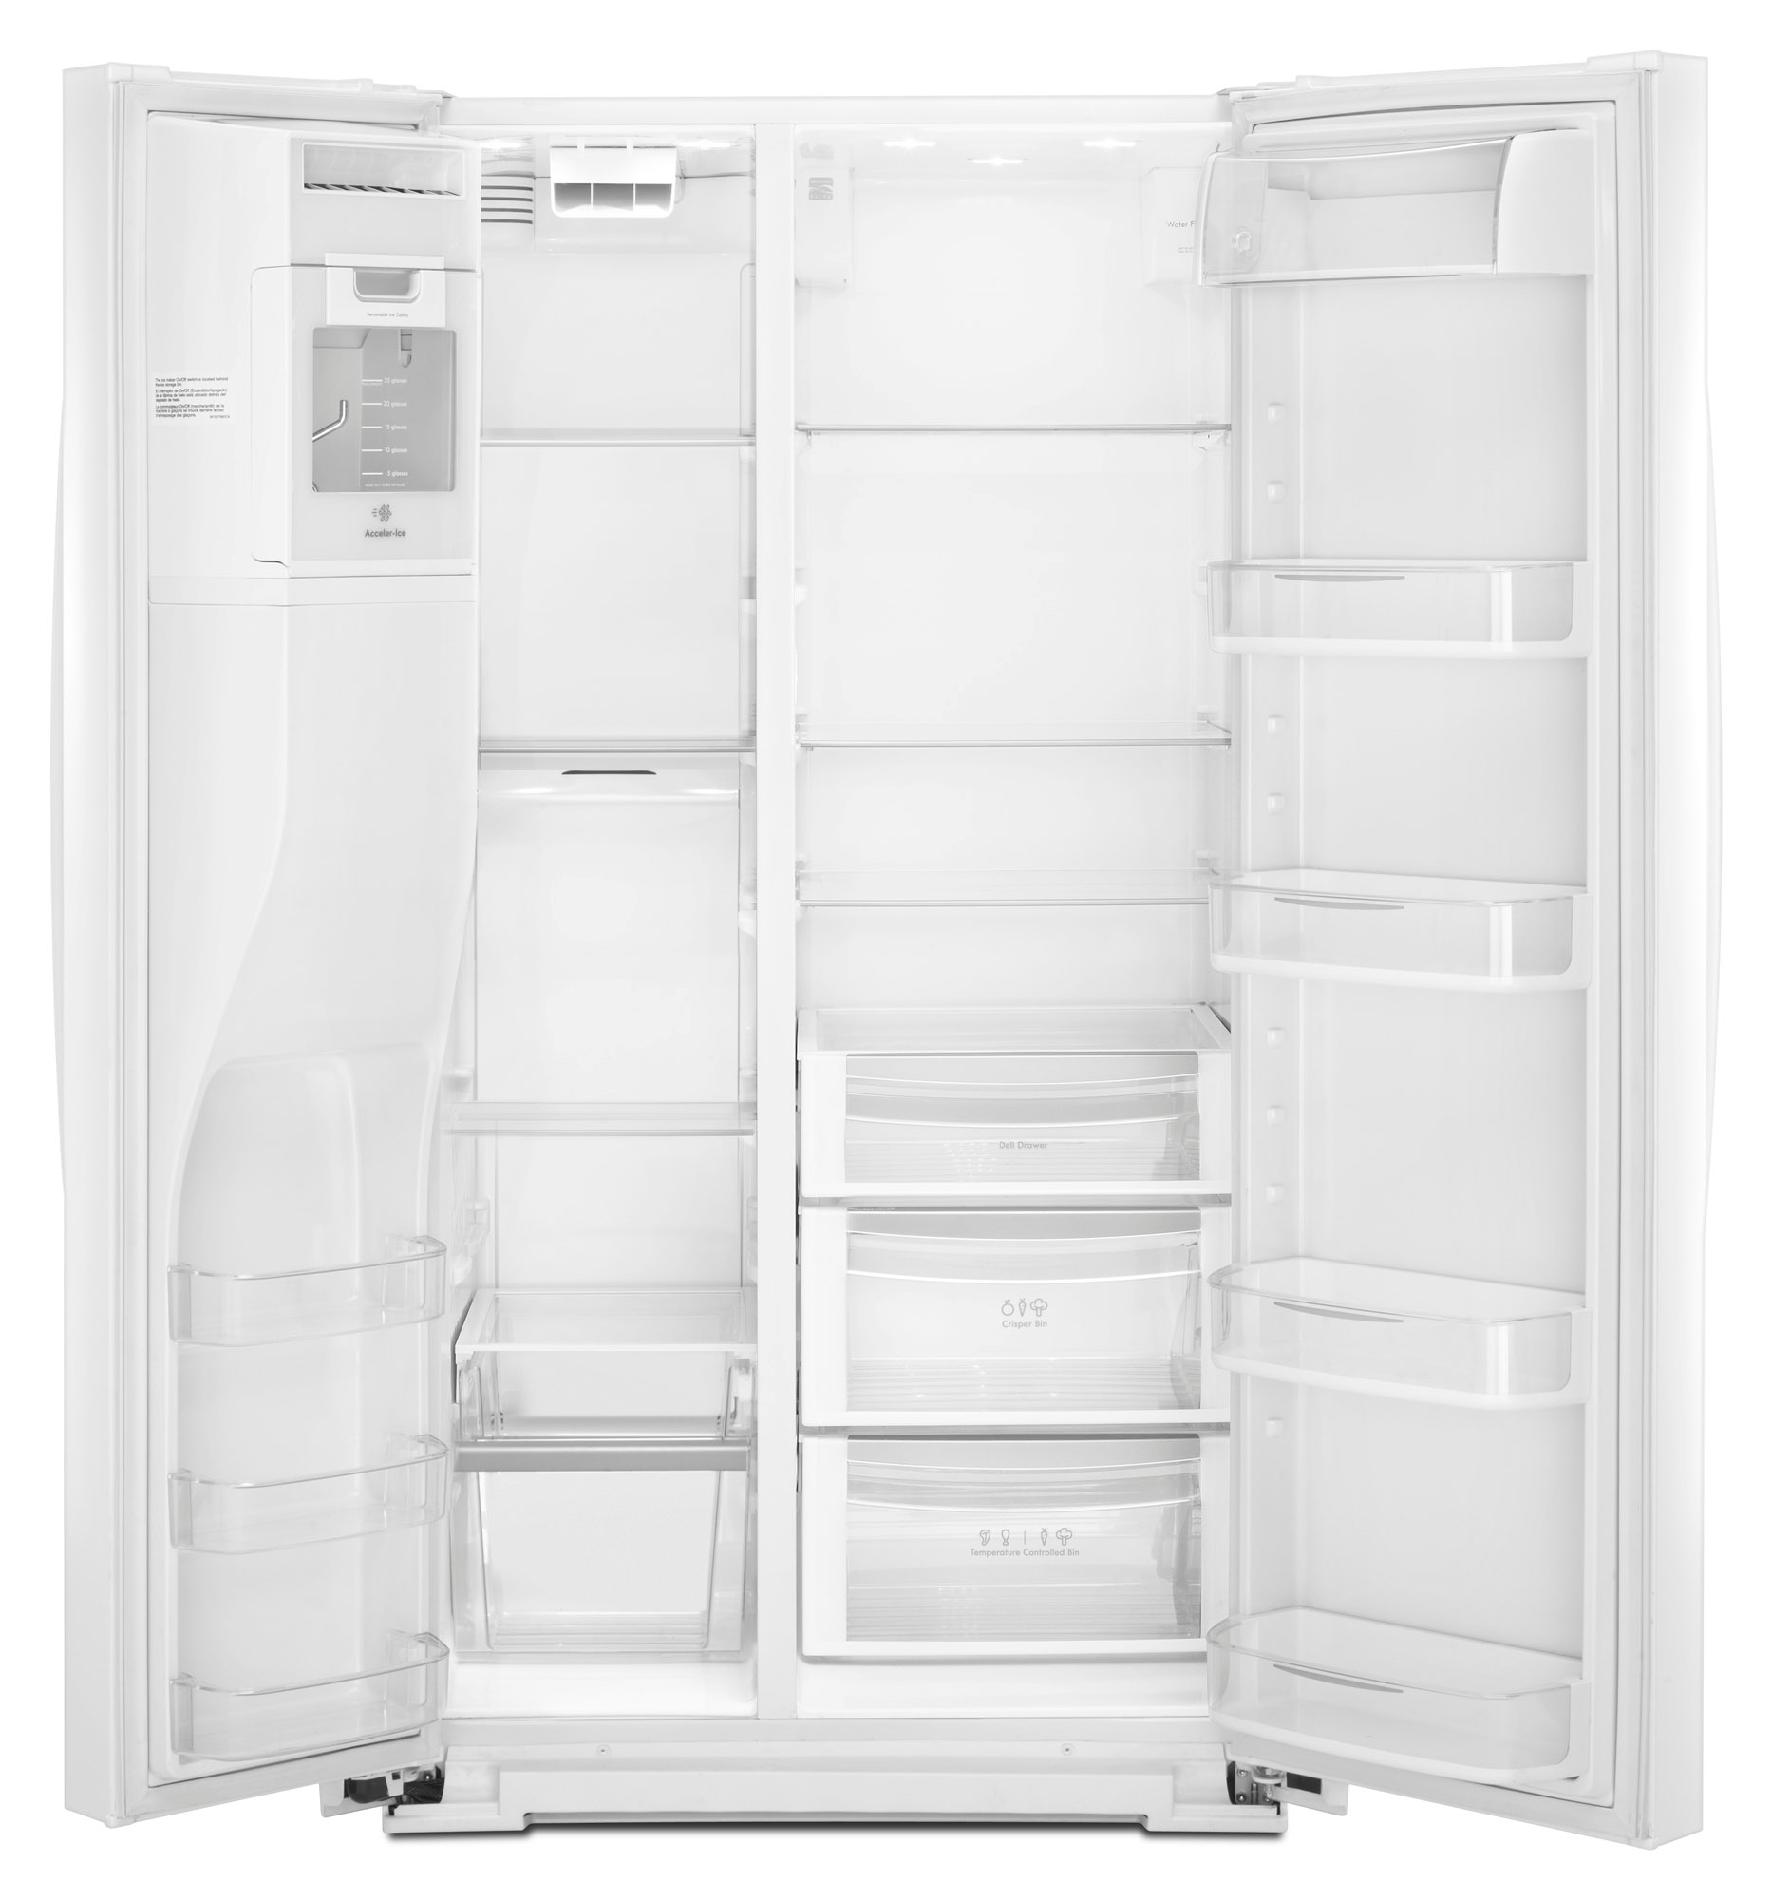 Kenmore Elite 24.5 cu. ft. Counter-Depth Side-by-Side Refrigerator - White